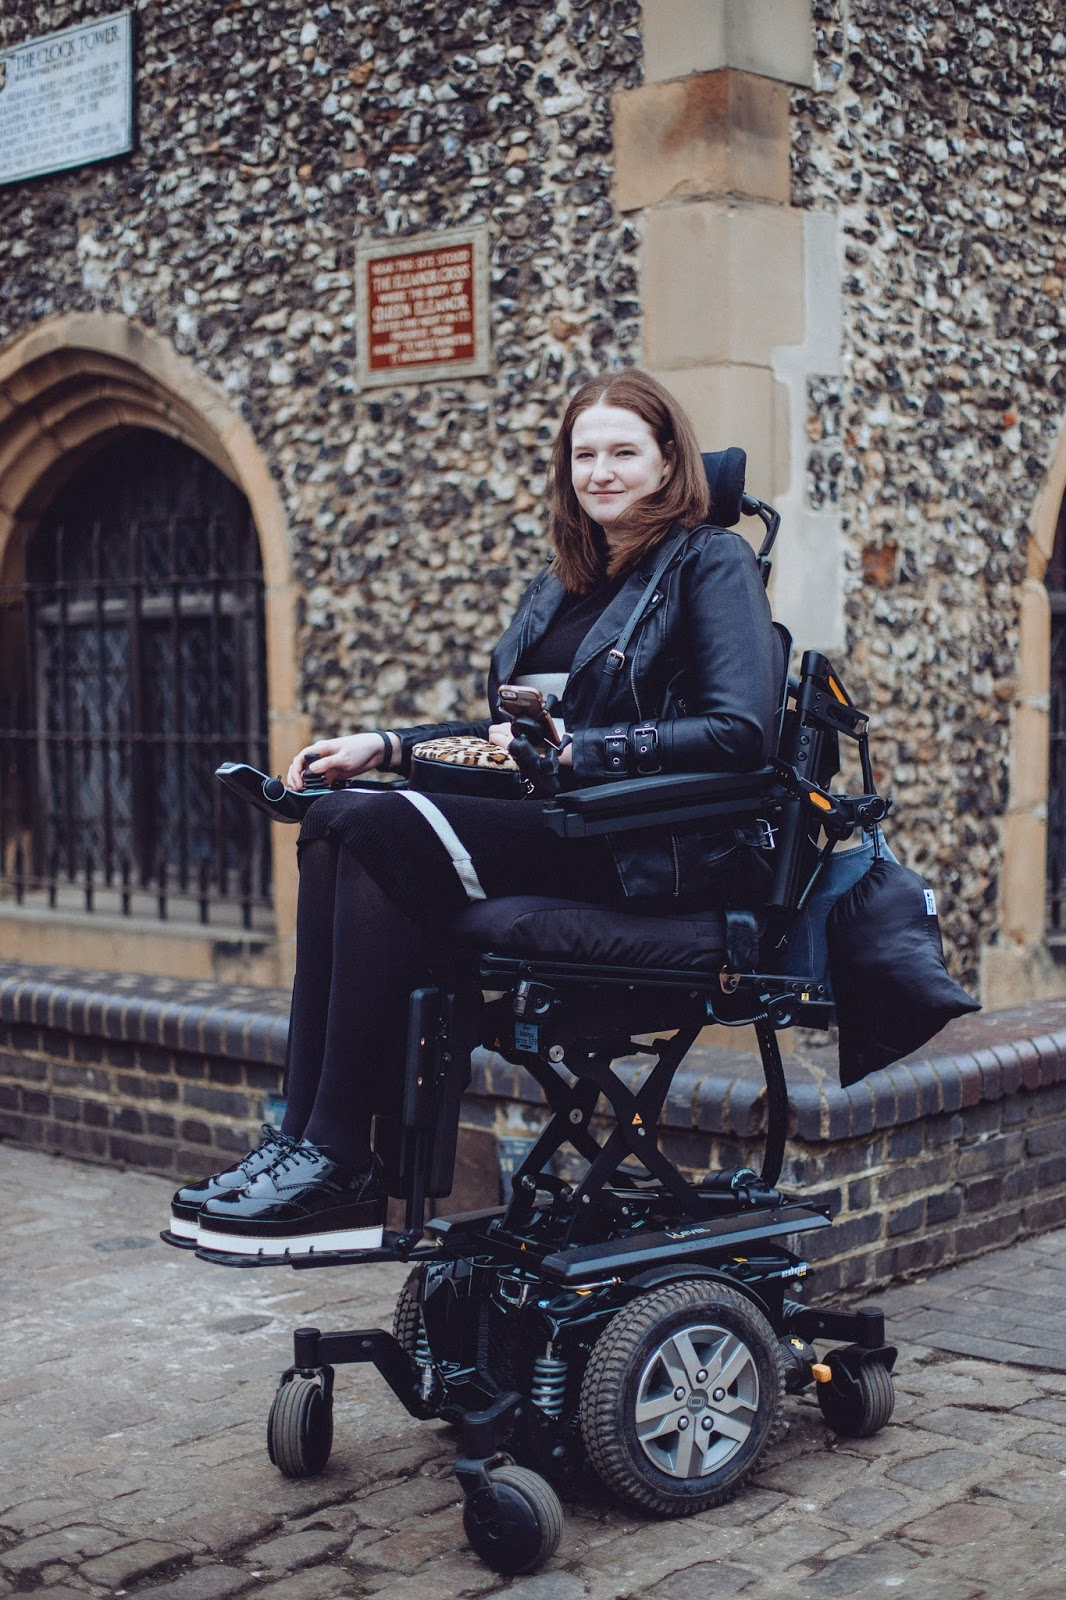 Shona is sitting in her powerchair smiling, her powerchair is raised up 10 inches using the elevate function. Shona is wearing a black dress, black and white flatform shoes, a leather look jacket and a loepard print bag. She is smiling.